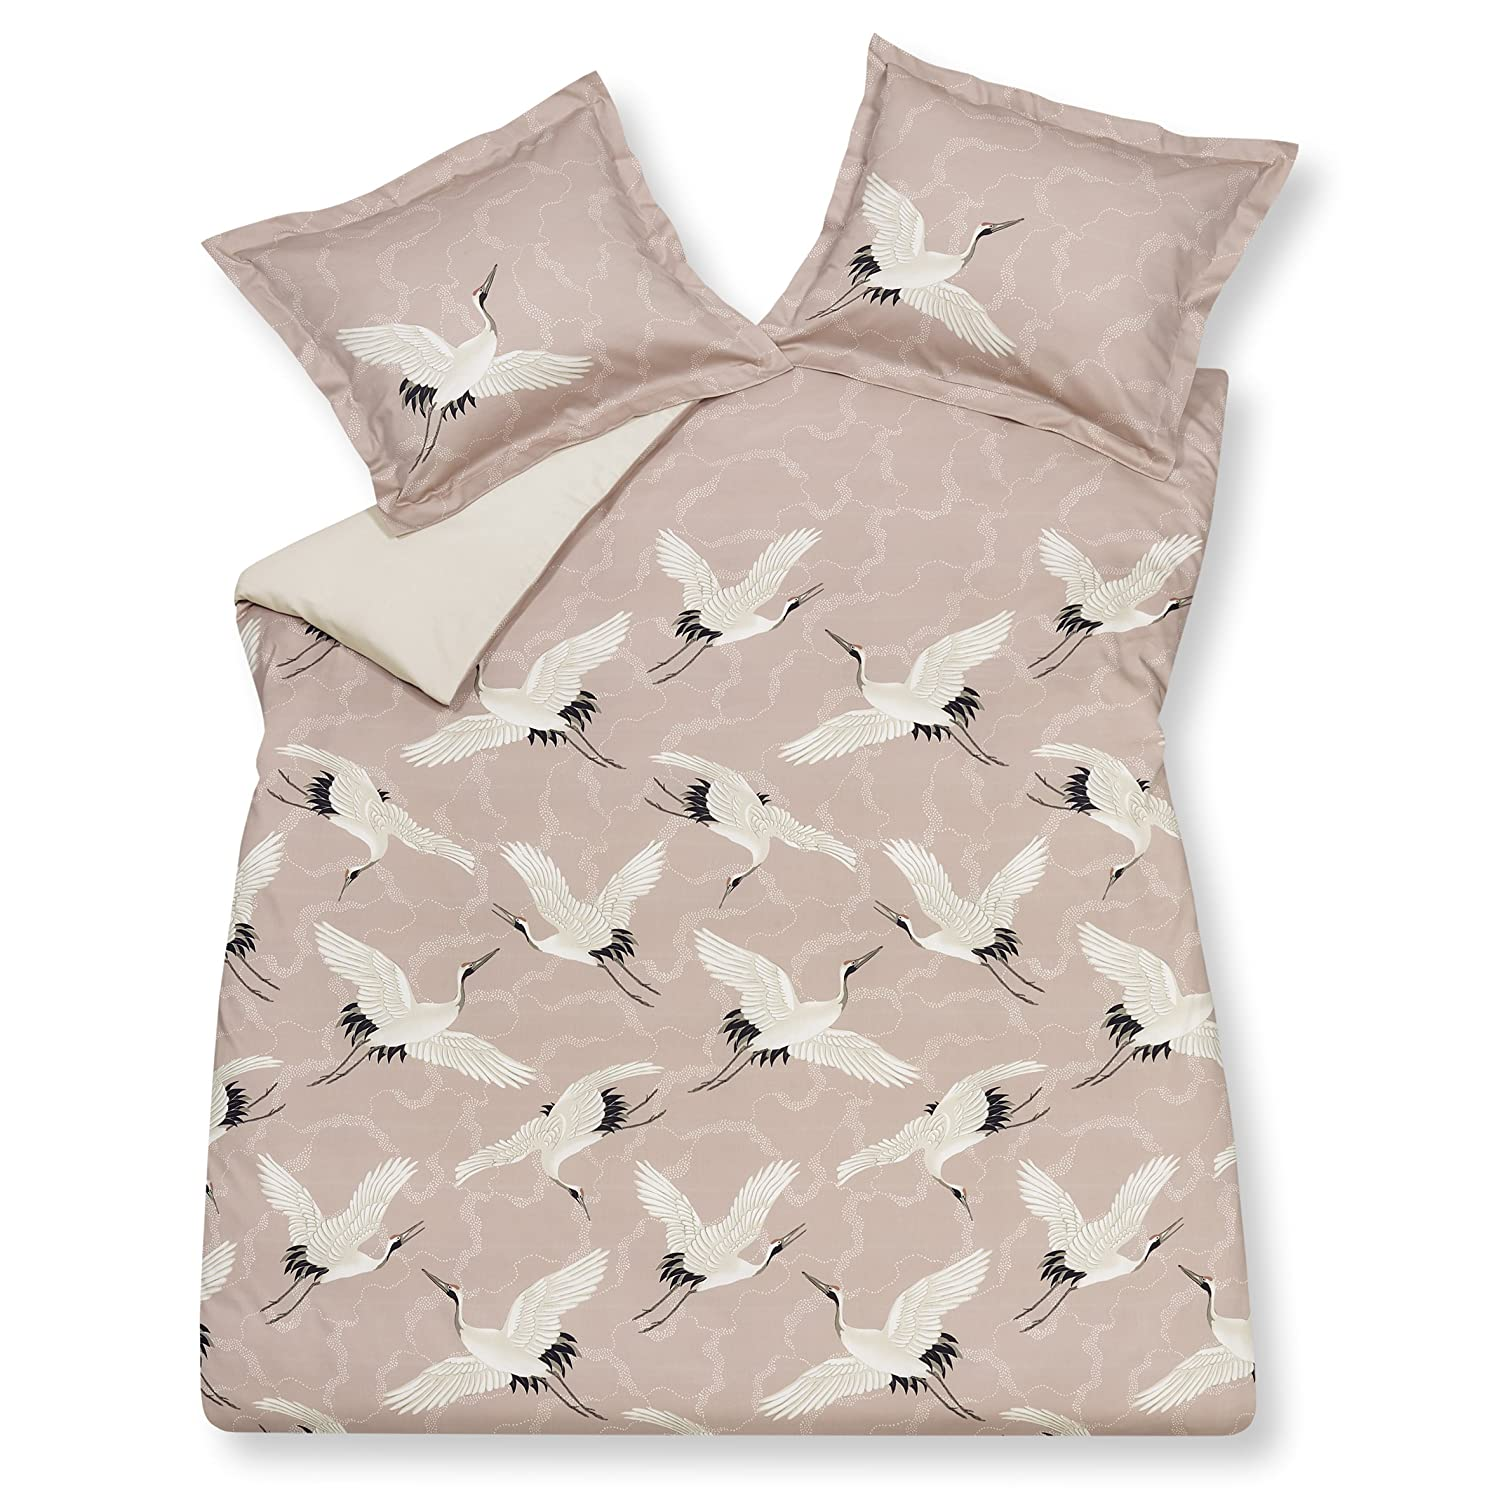 Vandyck Game Duvet Cover Flying Cranes Sepia Pink 144 Bed of 150 x190 200 Amazon Kitchen & Home